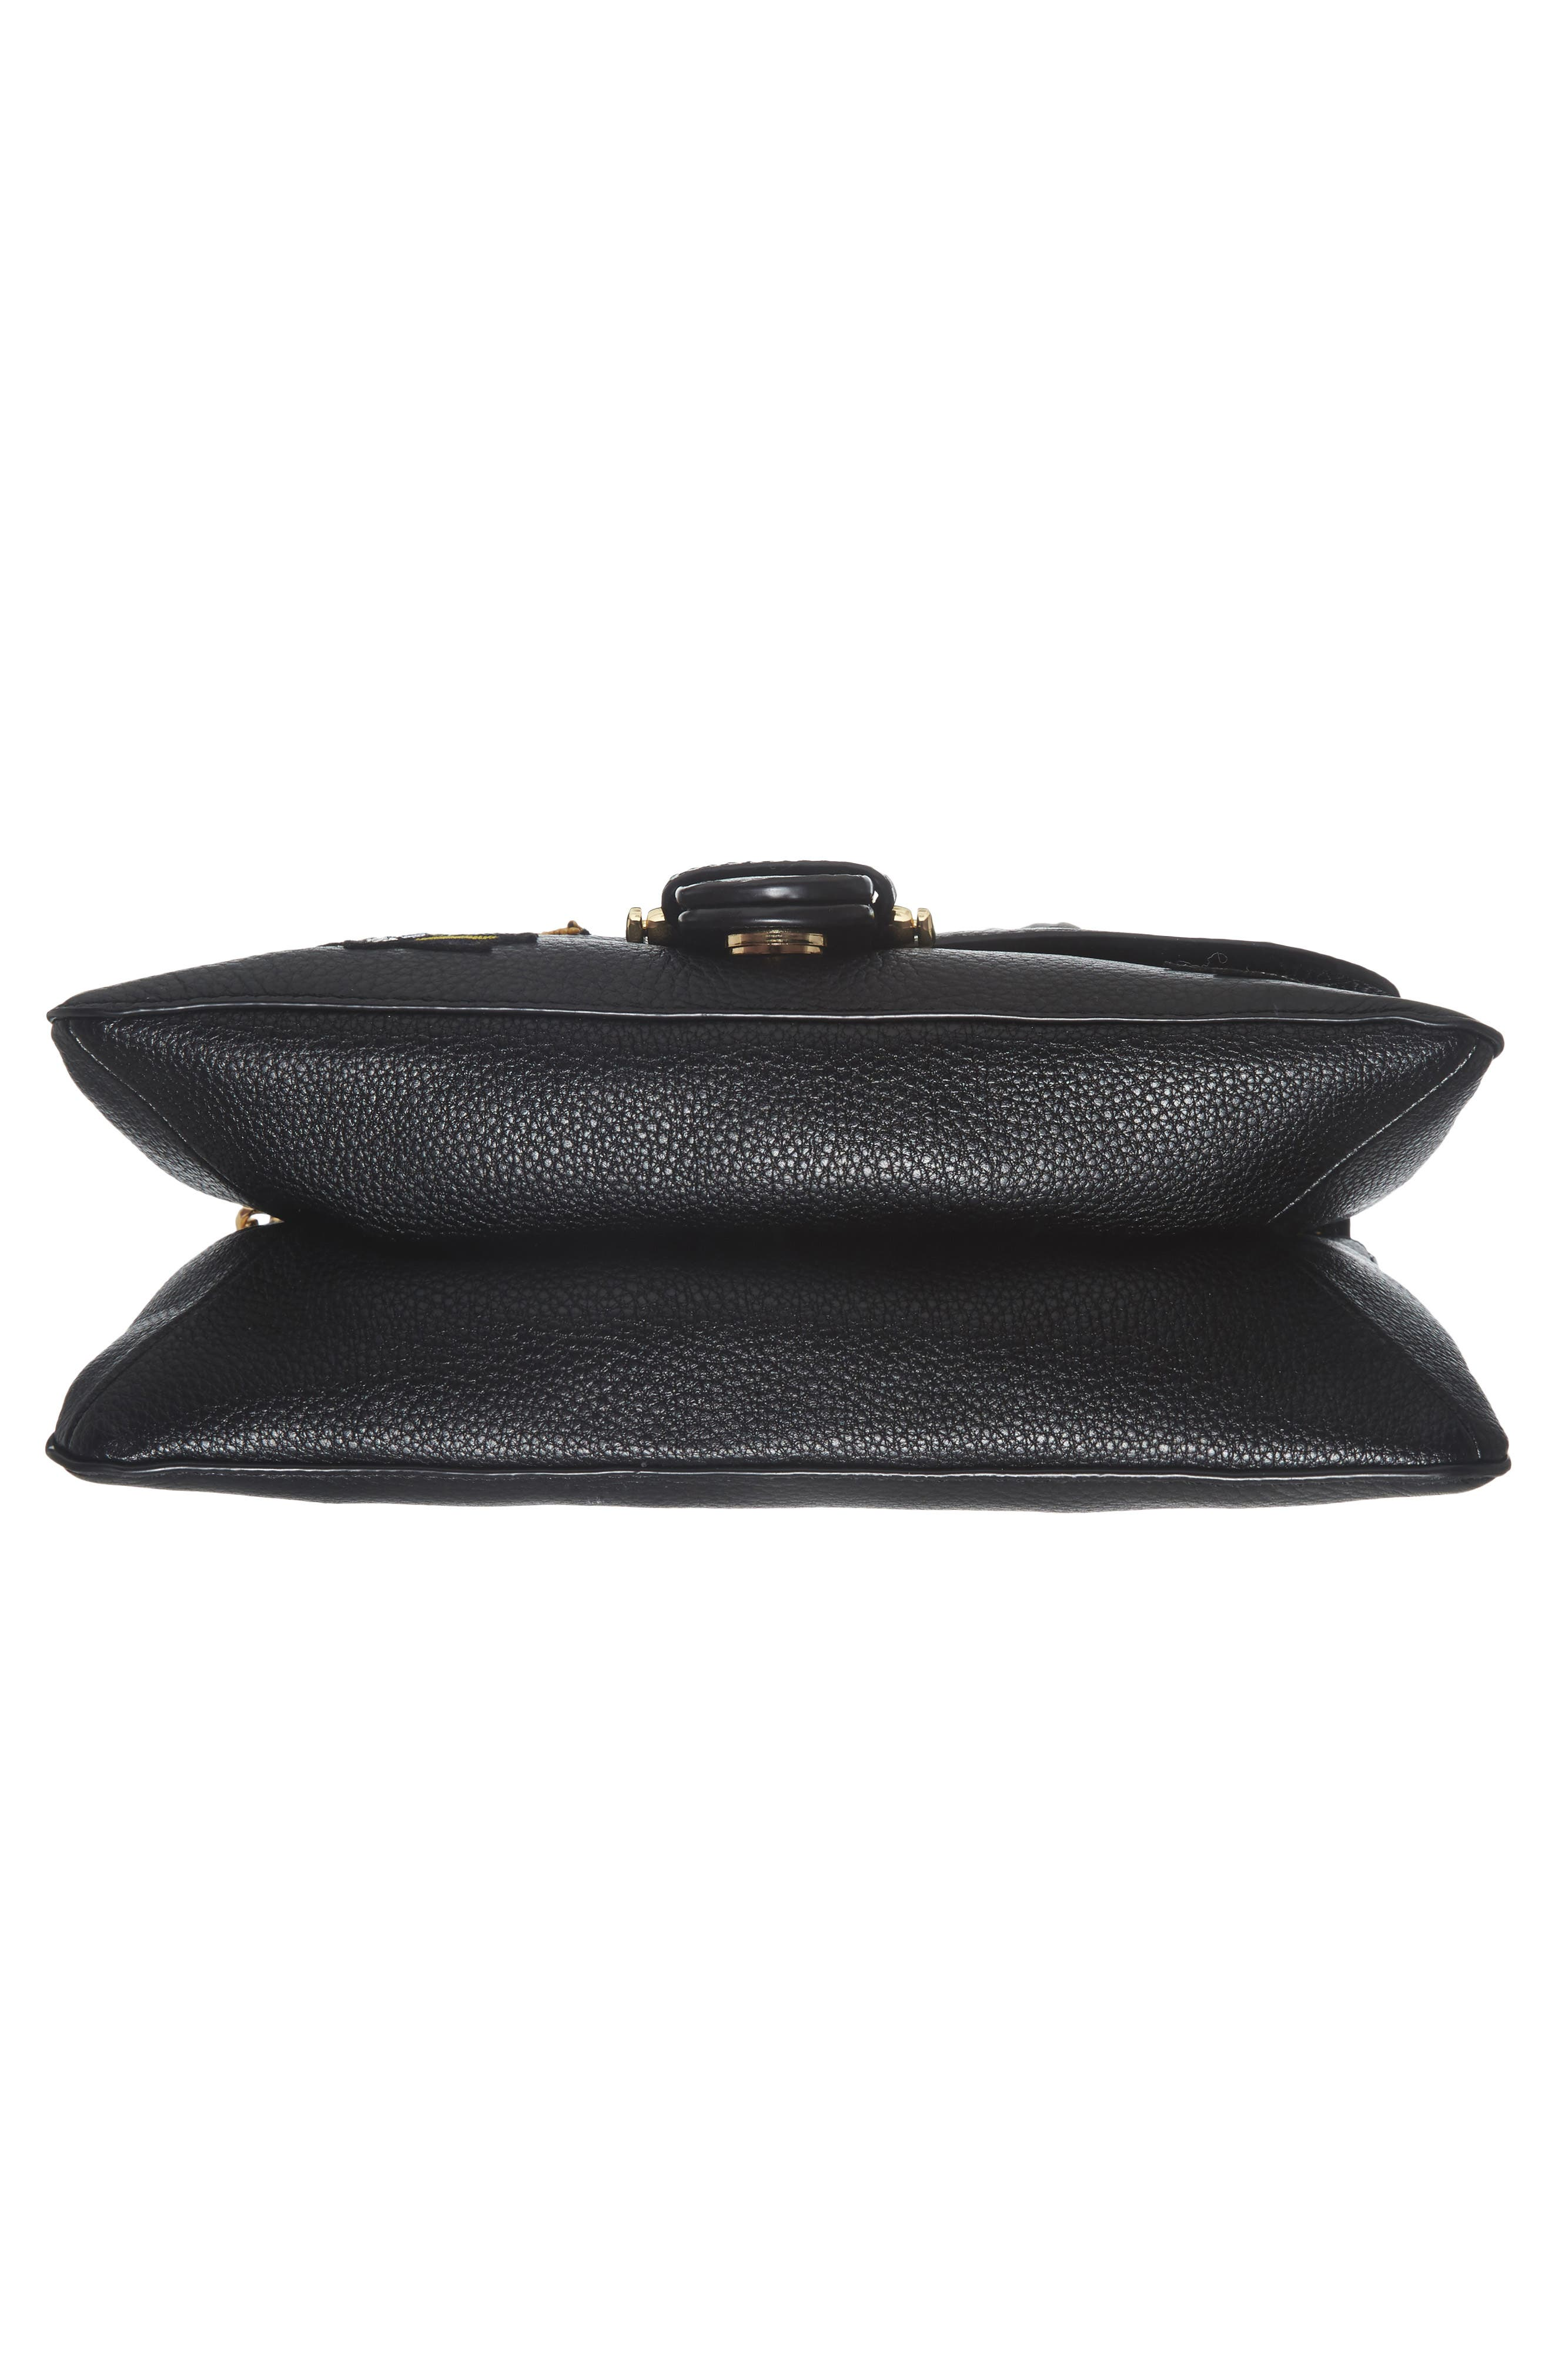 Asher Shoulder Bag,                             Alternate thumbnail 6, color,                             001